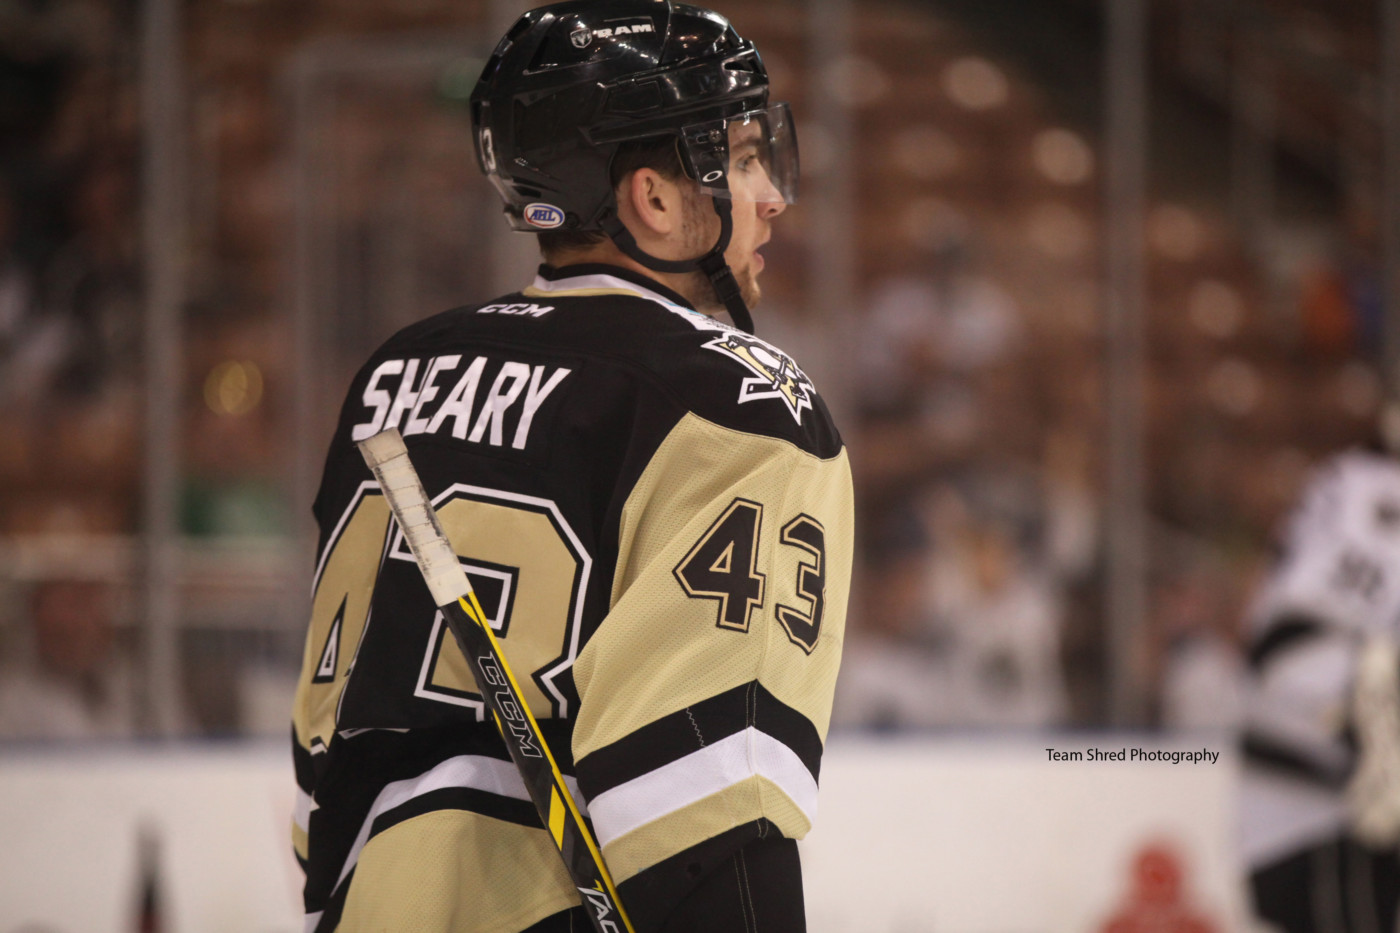 Conor-Sheary2